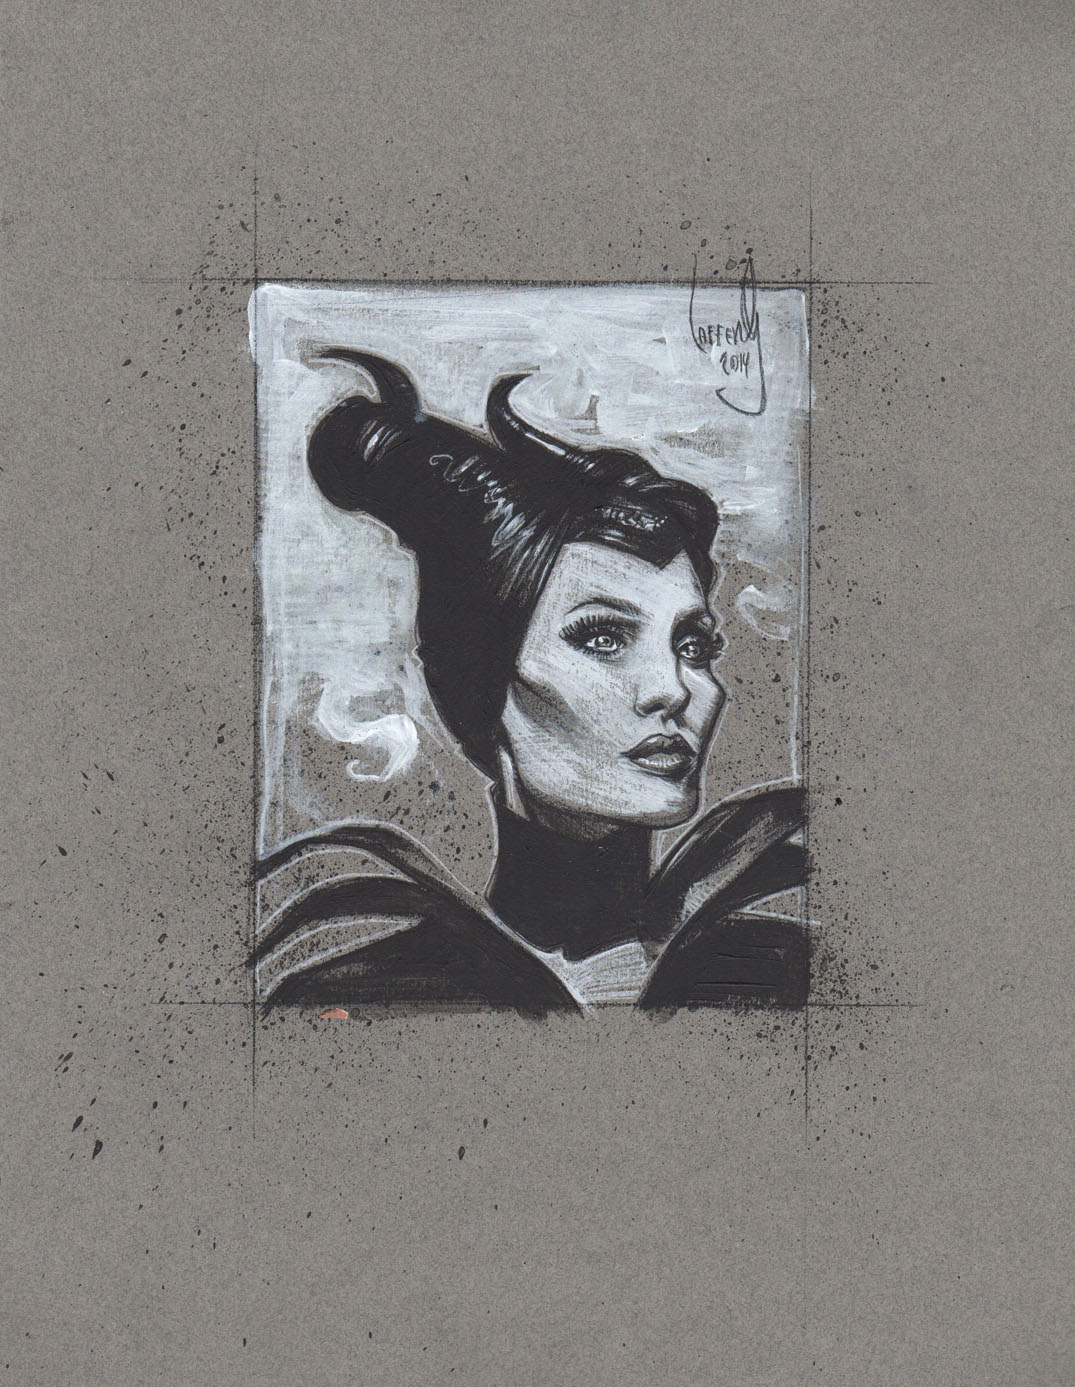 Angelina Jolie as Maleficent, Artwork is Copyright © 2014 Jeff Lafferty